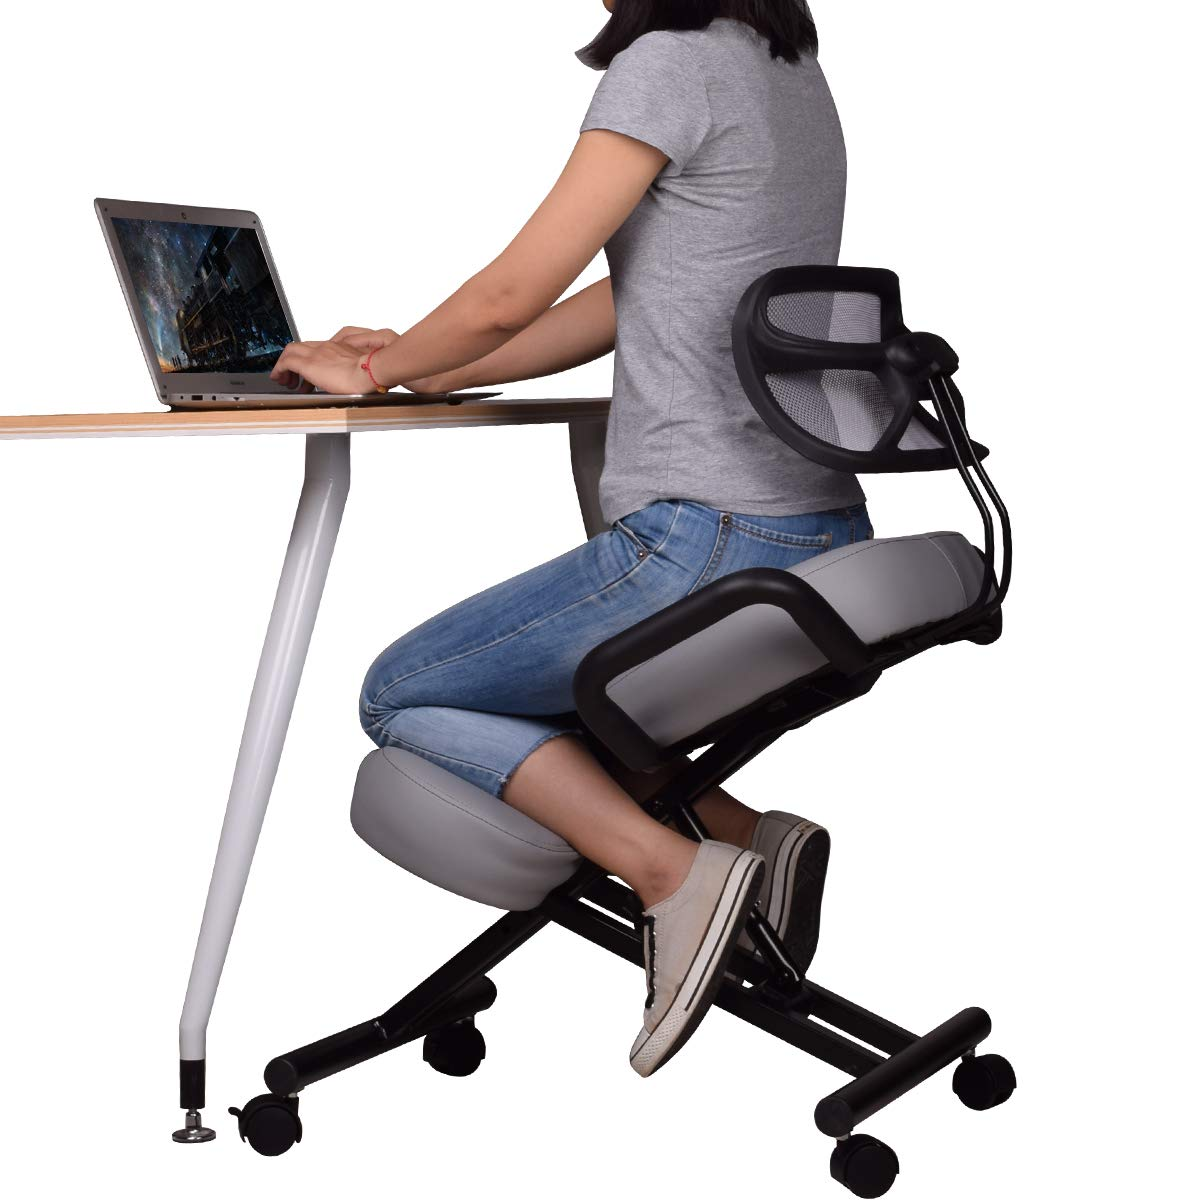 Ergonomic Kneeling Chair with Back Support, Adjustable Stool for Home and Office - Improve Your Posture with an Angled Seat - Thick Comfortable Cushions - Gray ... by Dragonn Enterprises